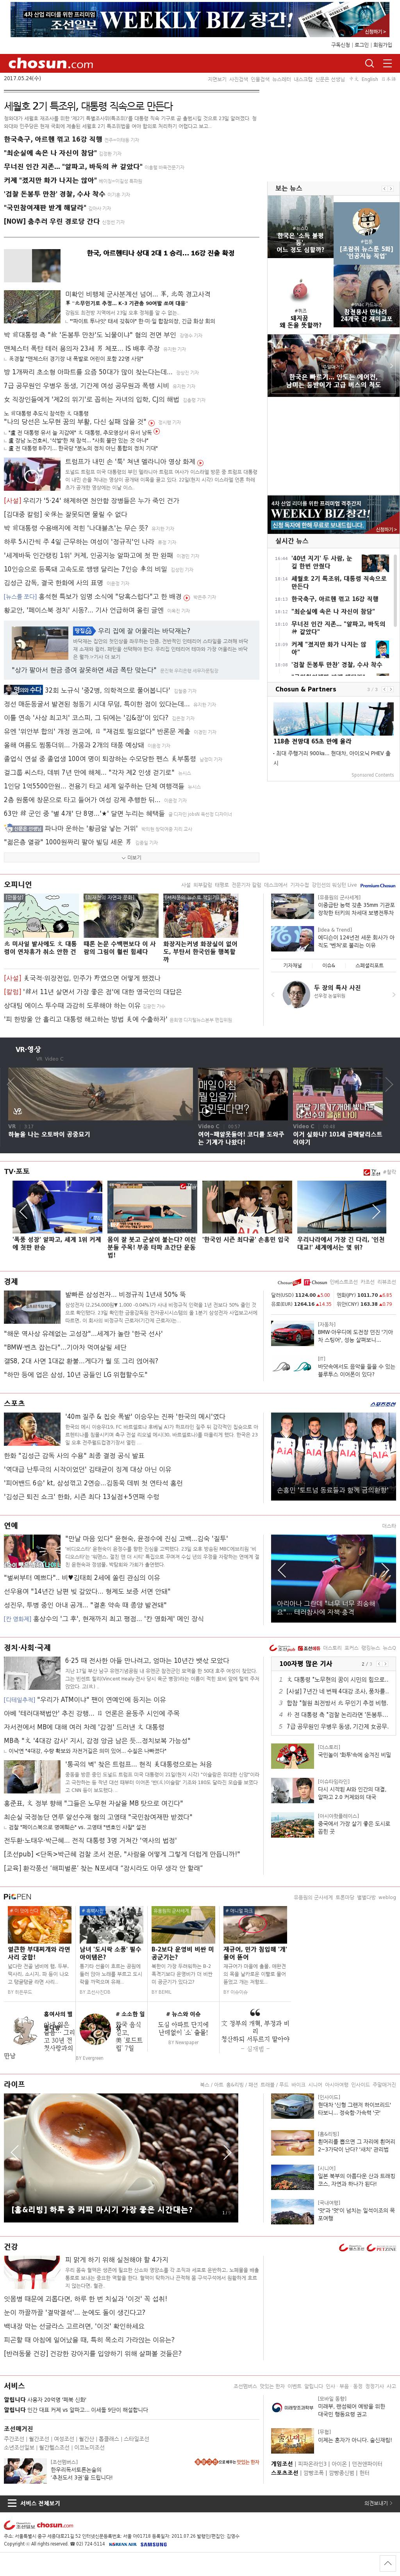 chosun.com at Tuesday May 23, 2017, 7:04 p.m. UTC